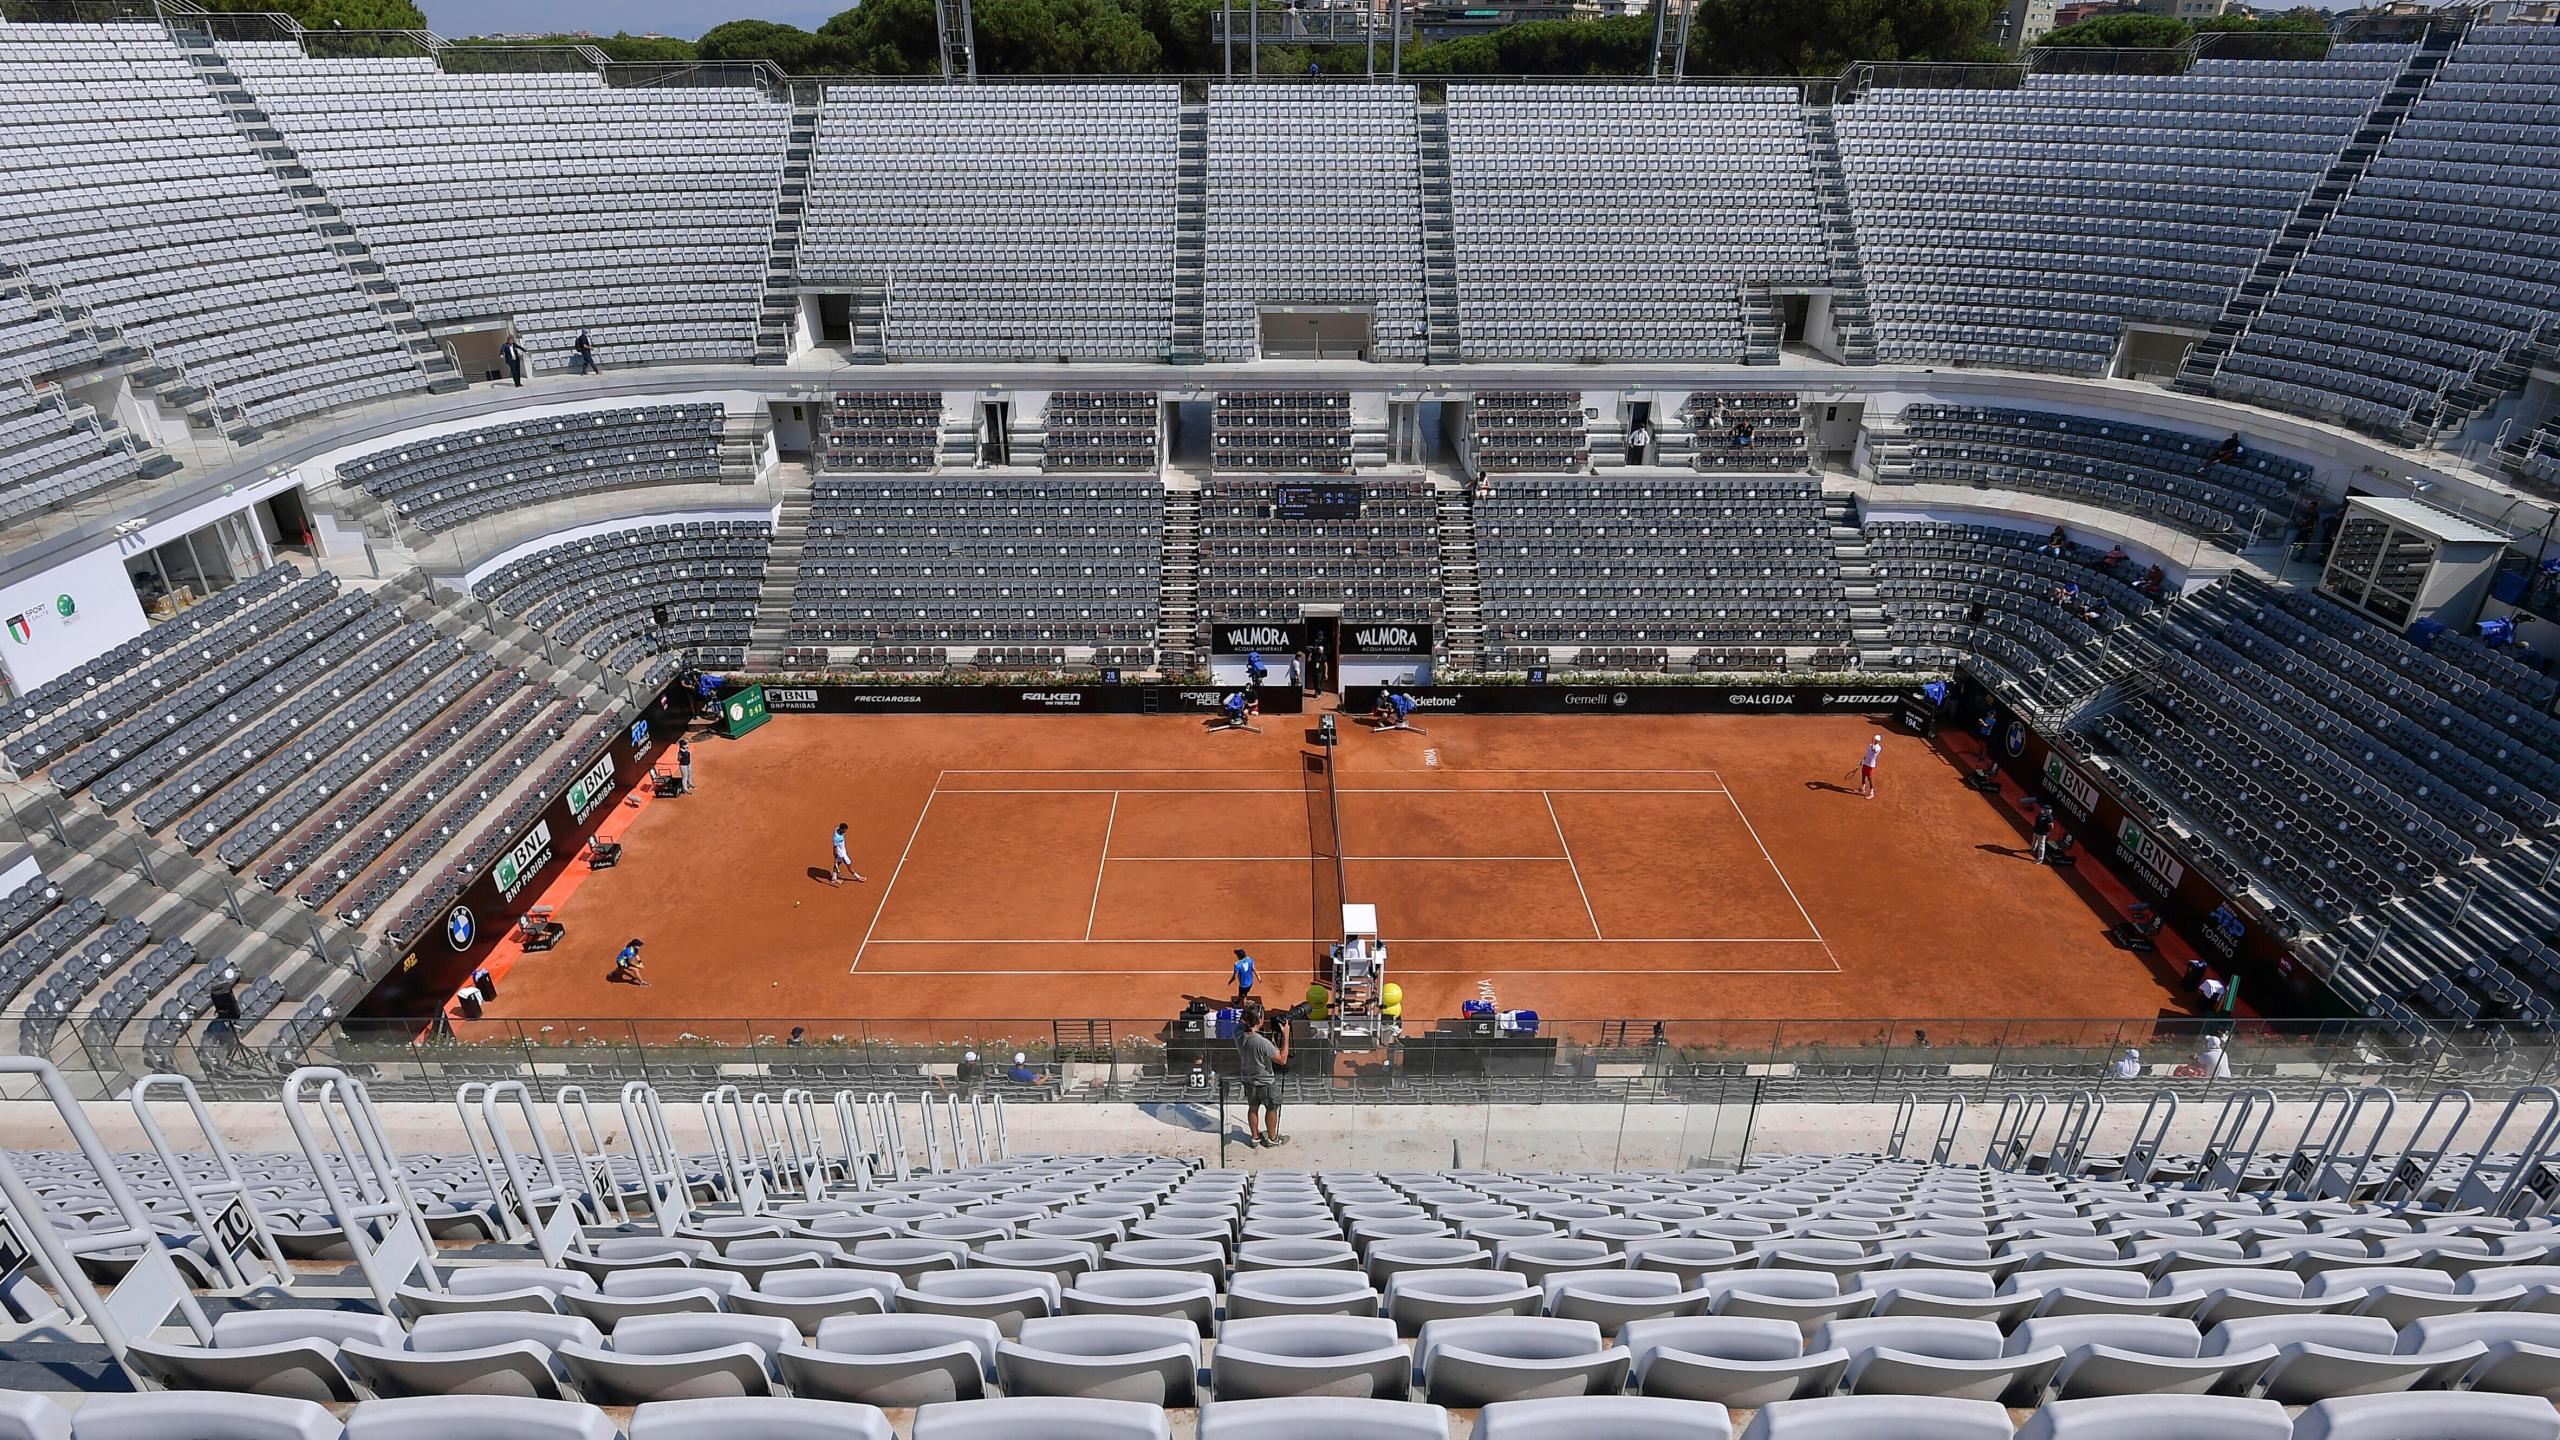 Pushed To The Limit Djokovic Finds A Way To Win In Rome Ksnt News